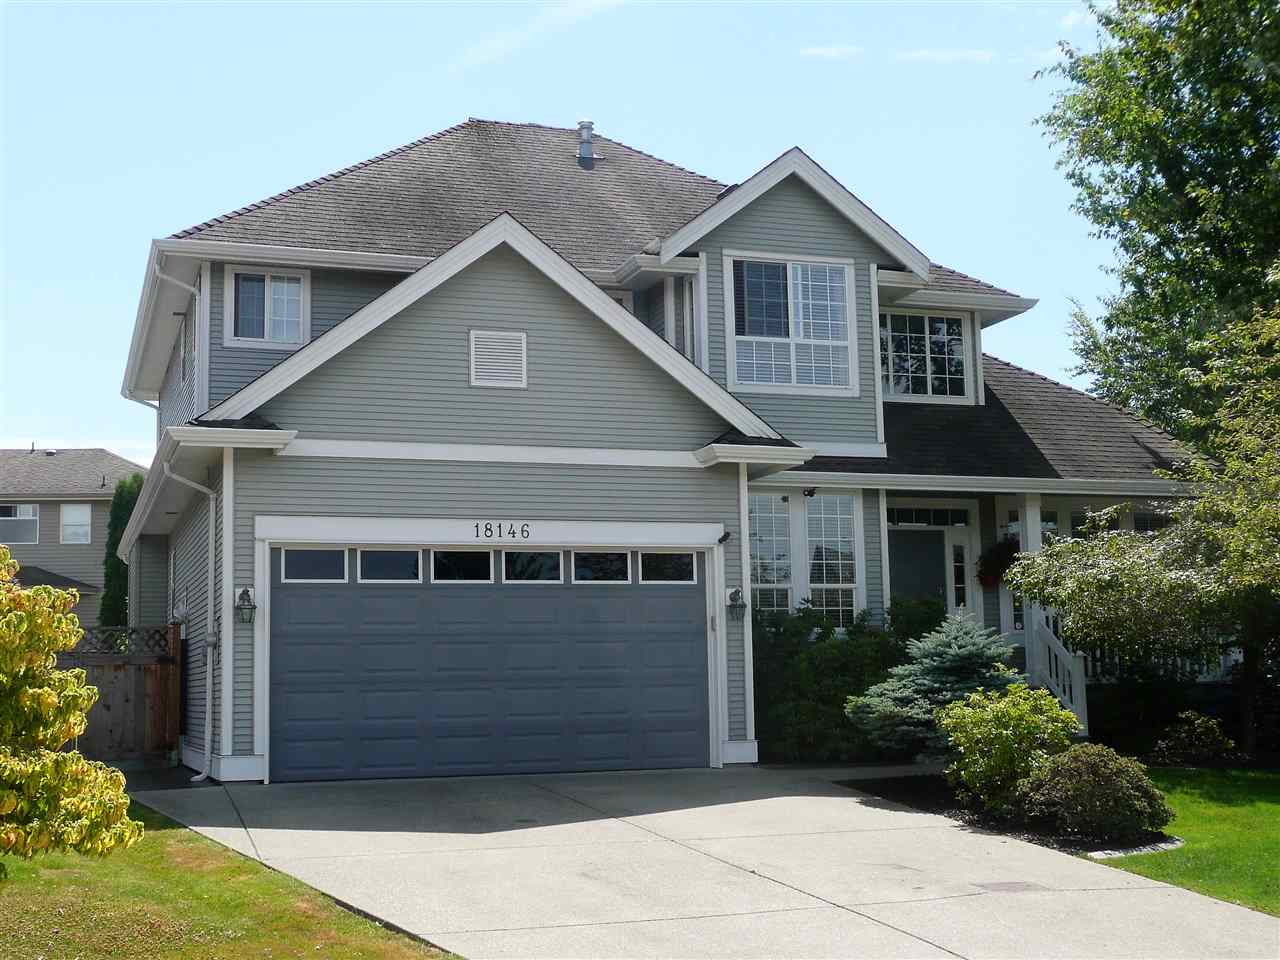 Detached at 18146 68A AVENUE, Cloverdale, British Columbia. Image 1